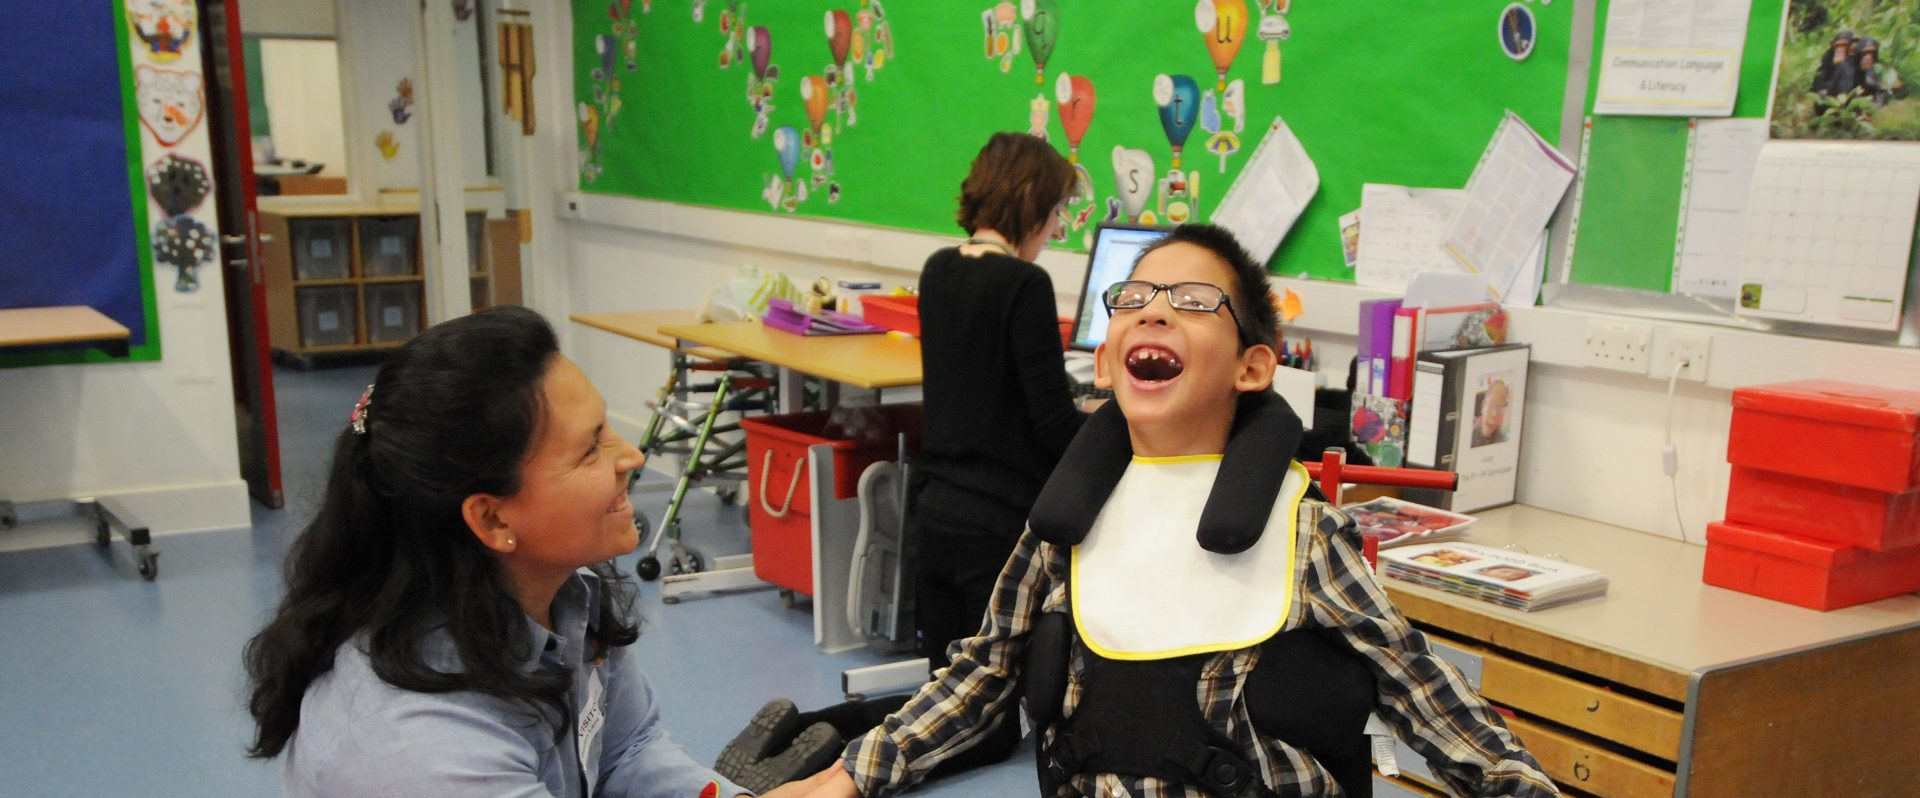 A boy with cerebral palsy smiles in our dynamic seat as his mother looks on smiling